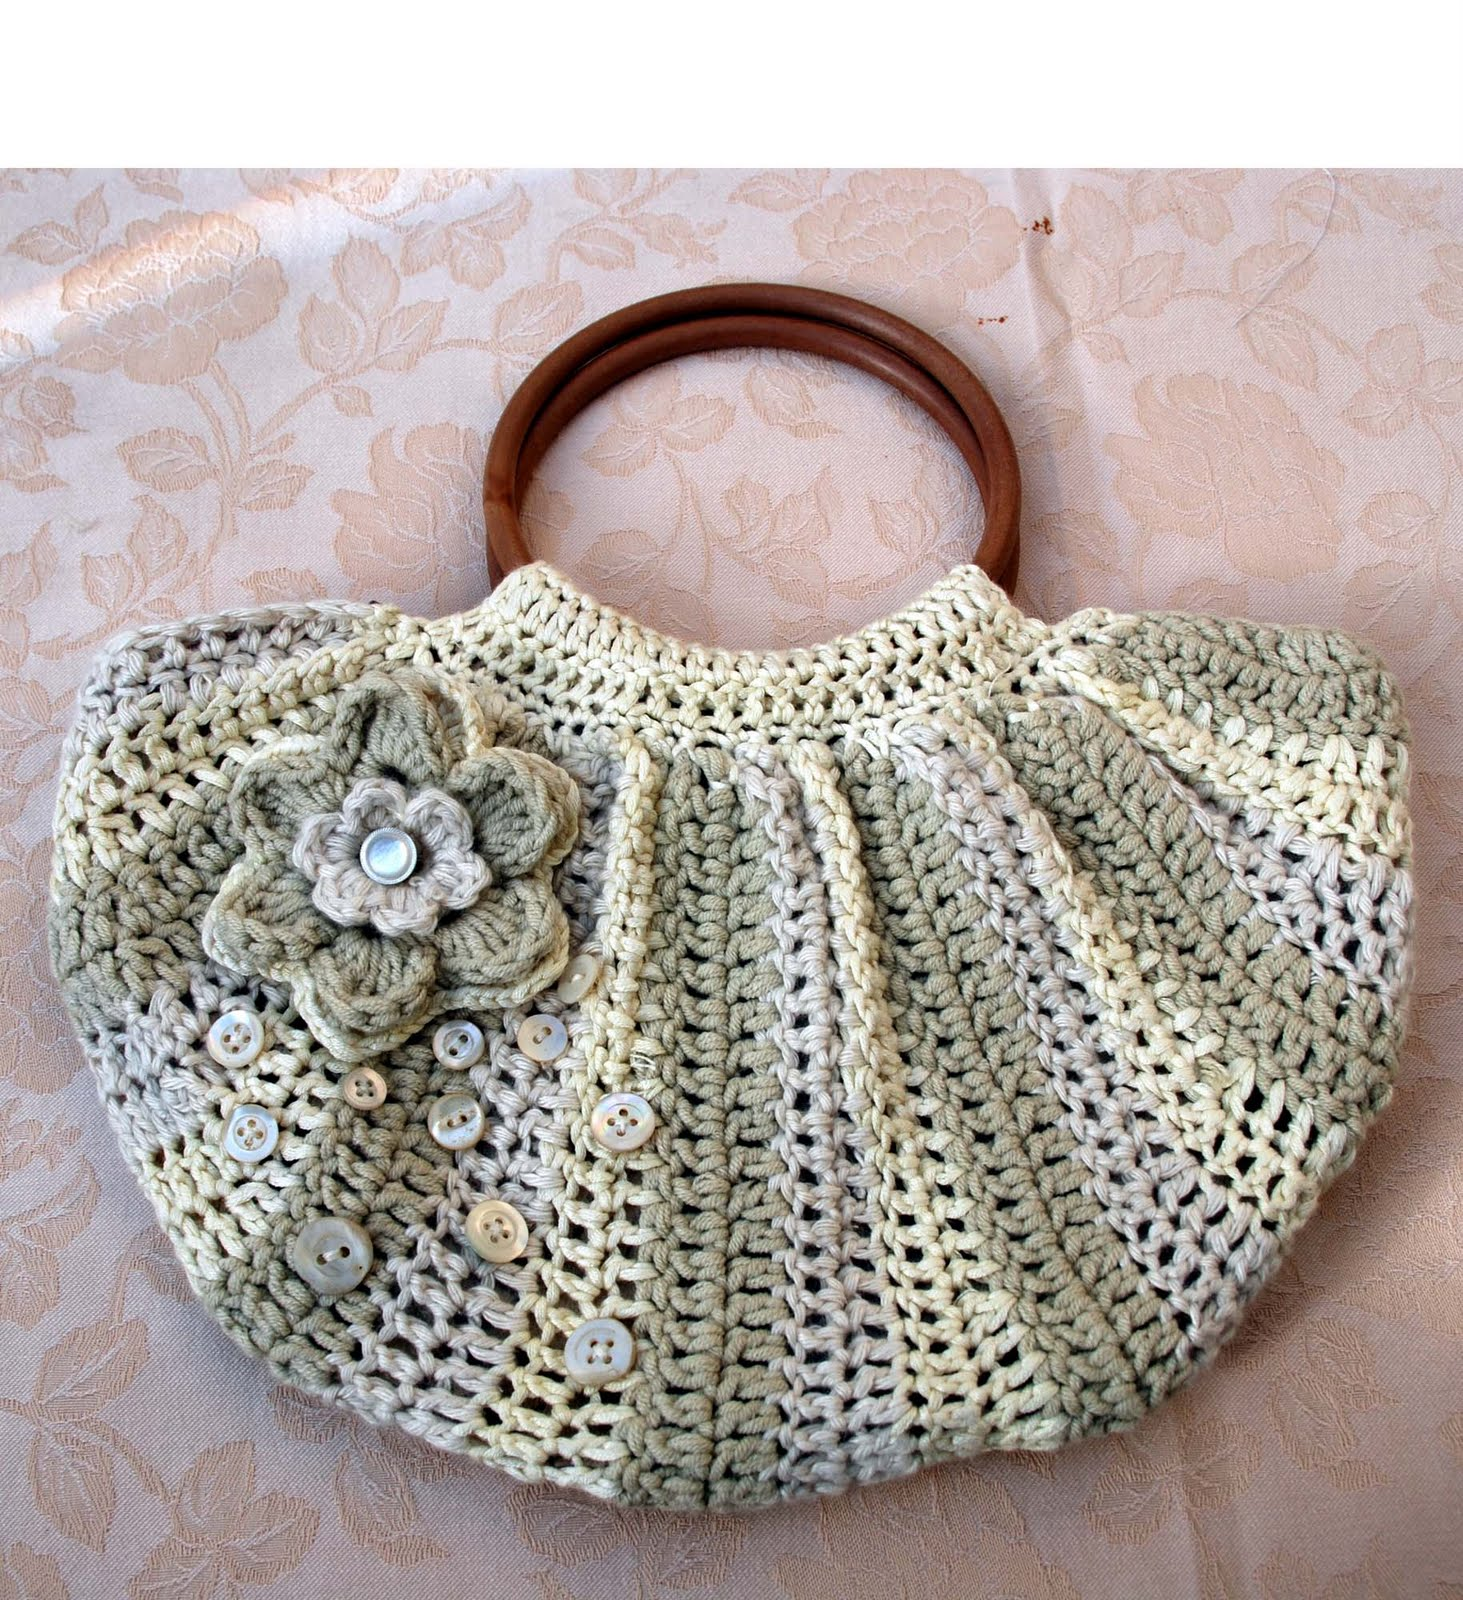 Knitting Patterns Free: crochet bag